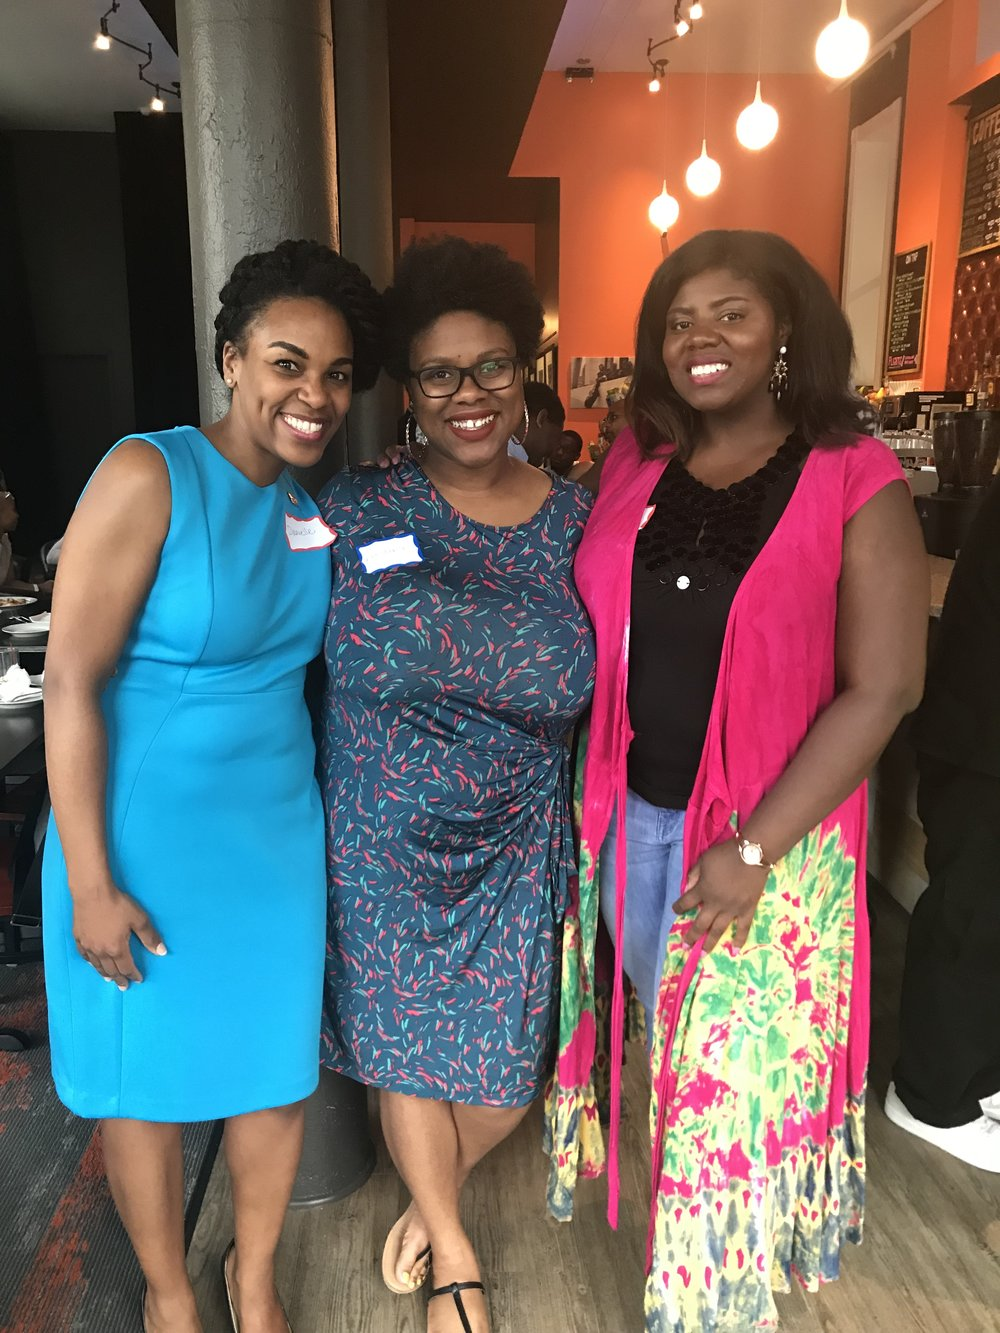 Danielle Jones, Keeyana Avery and Jenifer Moor at the recent PRSA Black PR Pros happy hour.